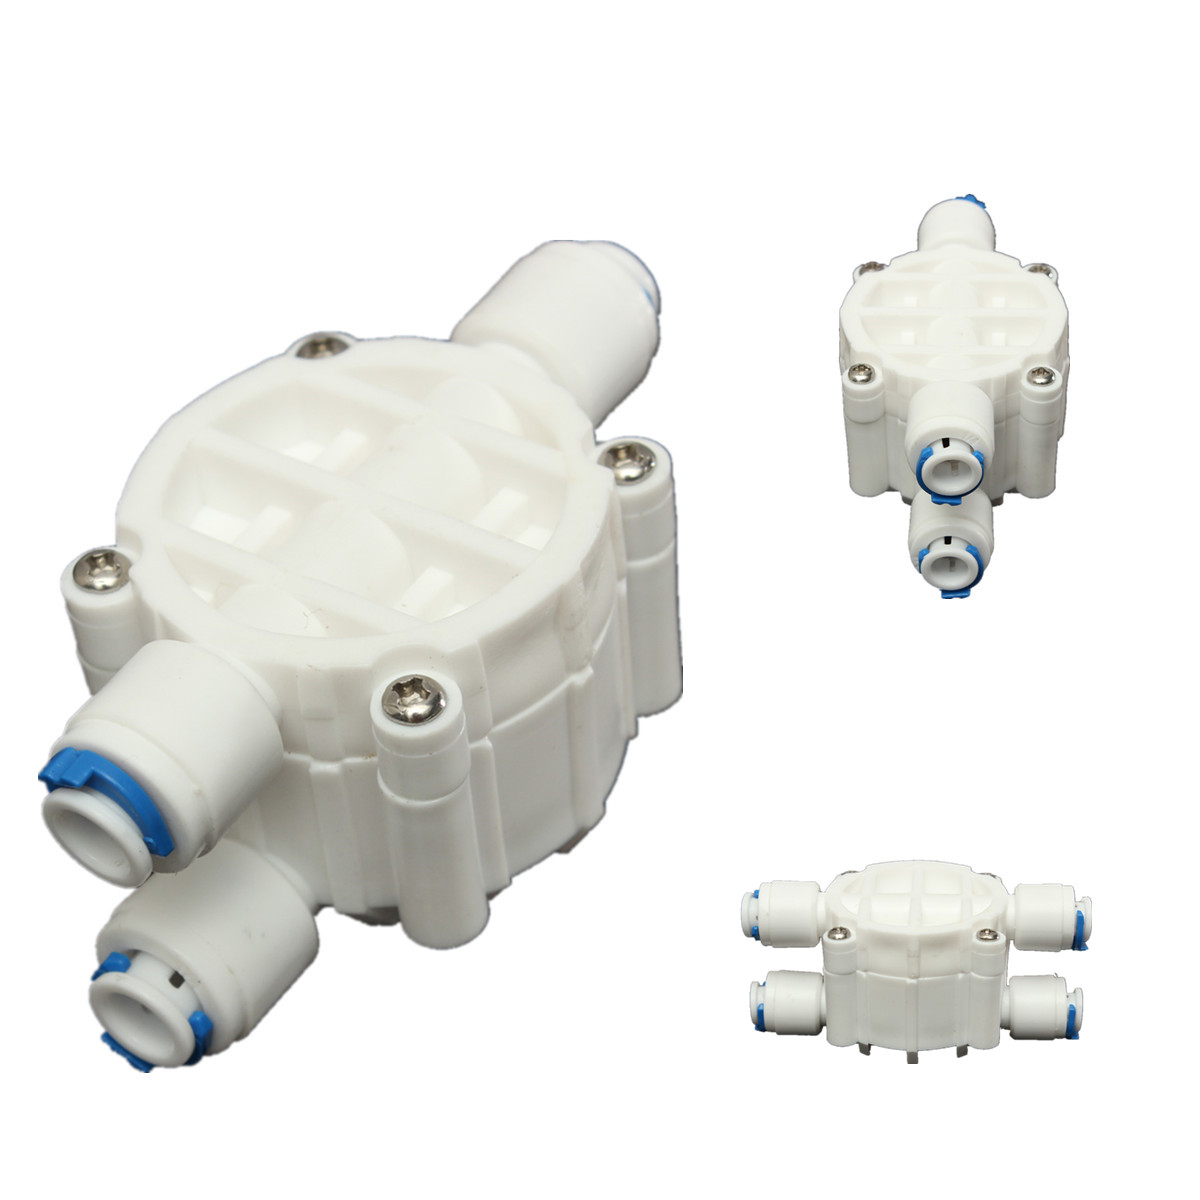 1 4 4 way auto shut off valve quick connect for ro reverse osmosis system lazada malaysia. Black Bedroom Furniture Sets. Home Design Ideas